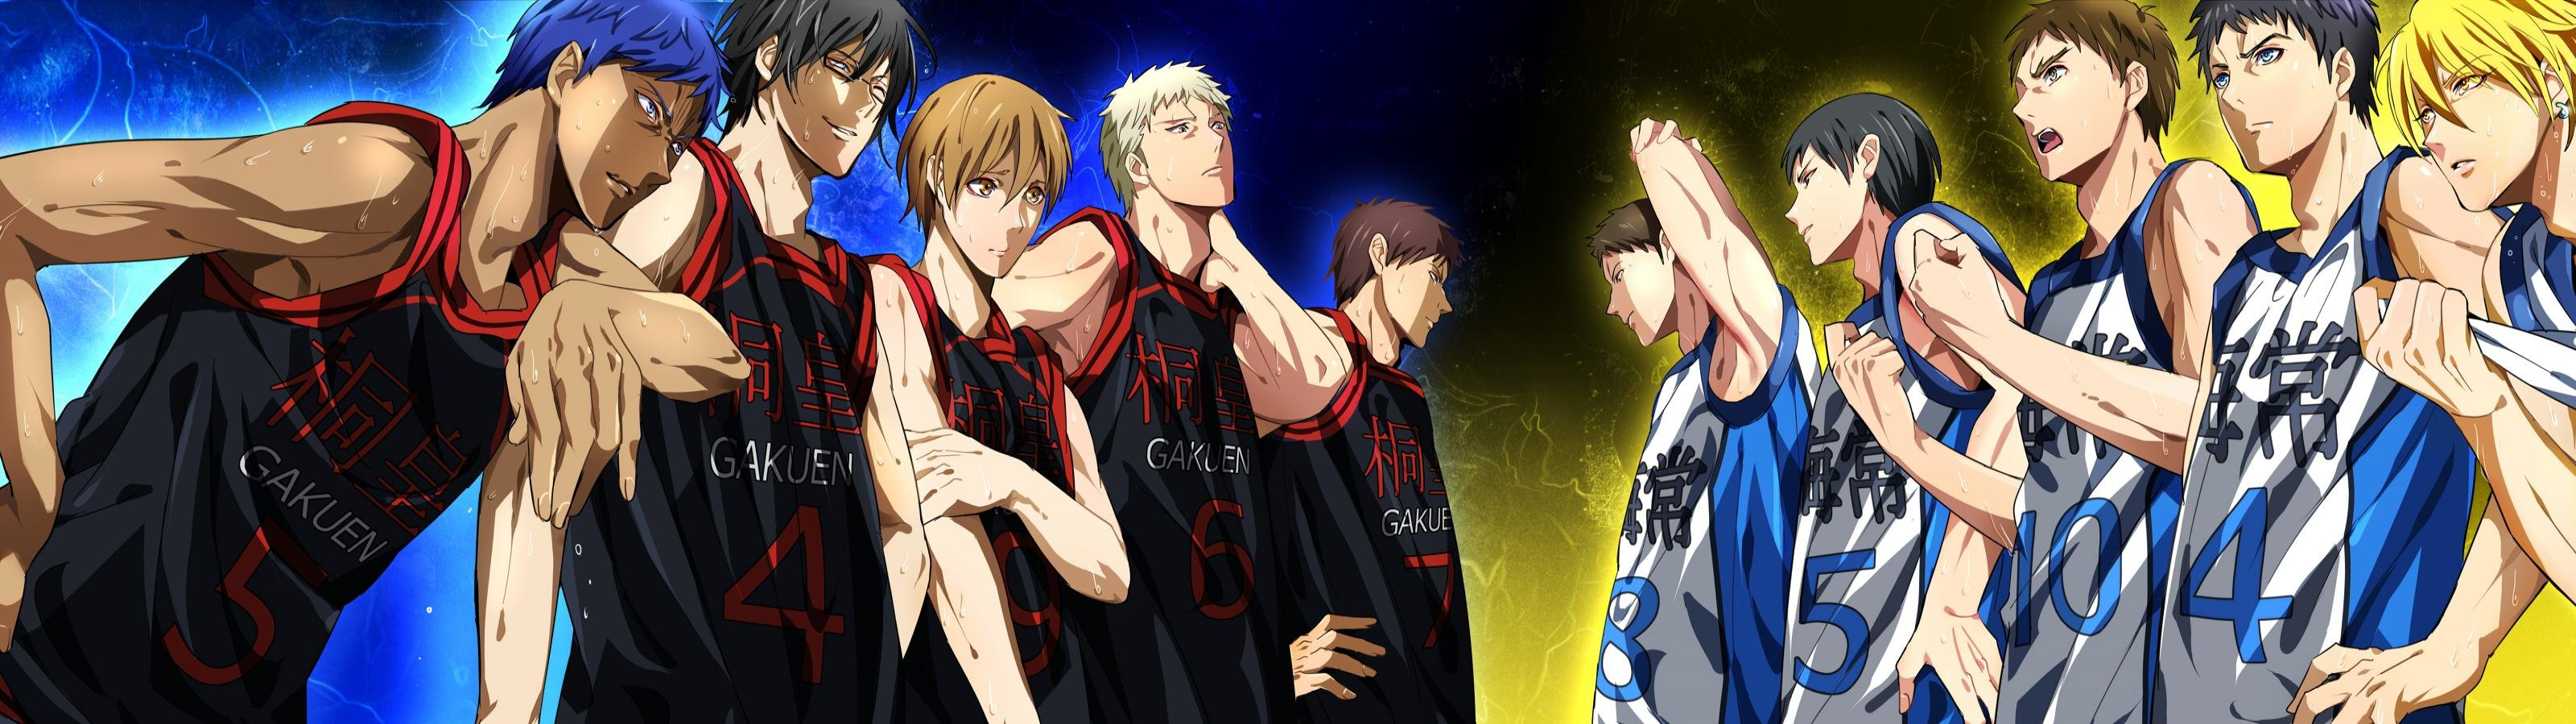 High resolution Kuroko's Basketball dual monitor 3200x900 wallpaper ID:318883 for PC